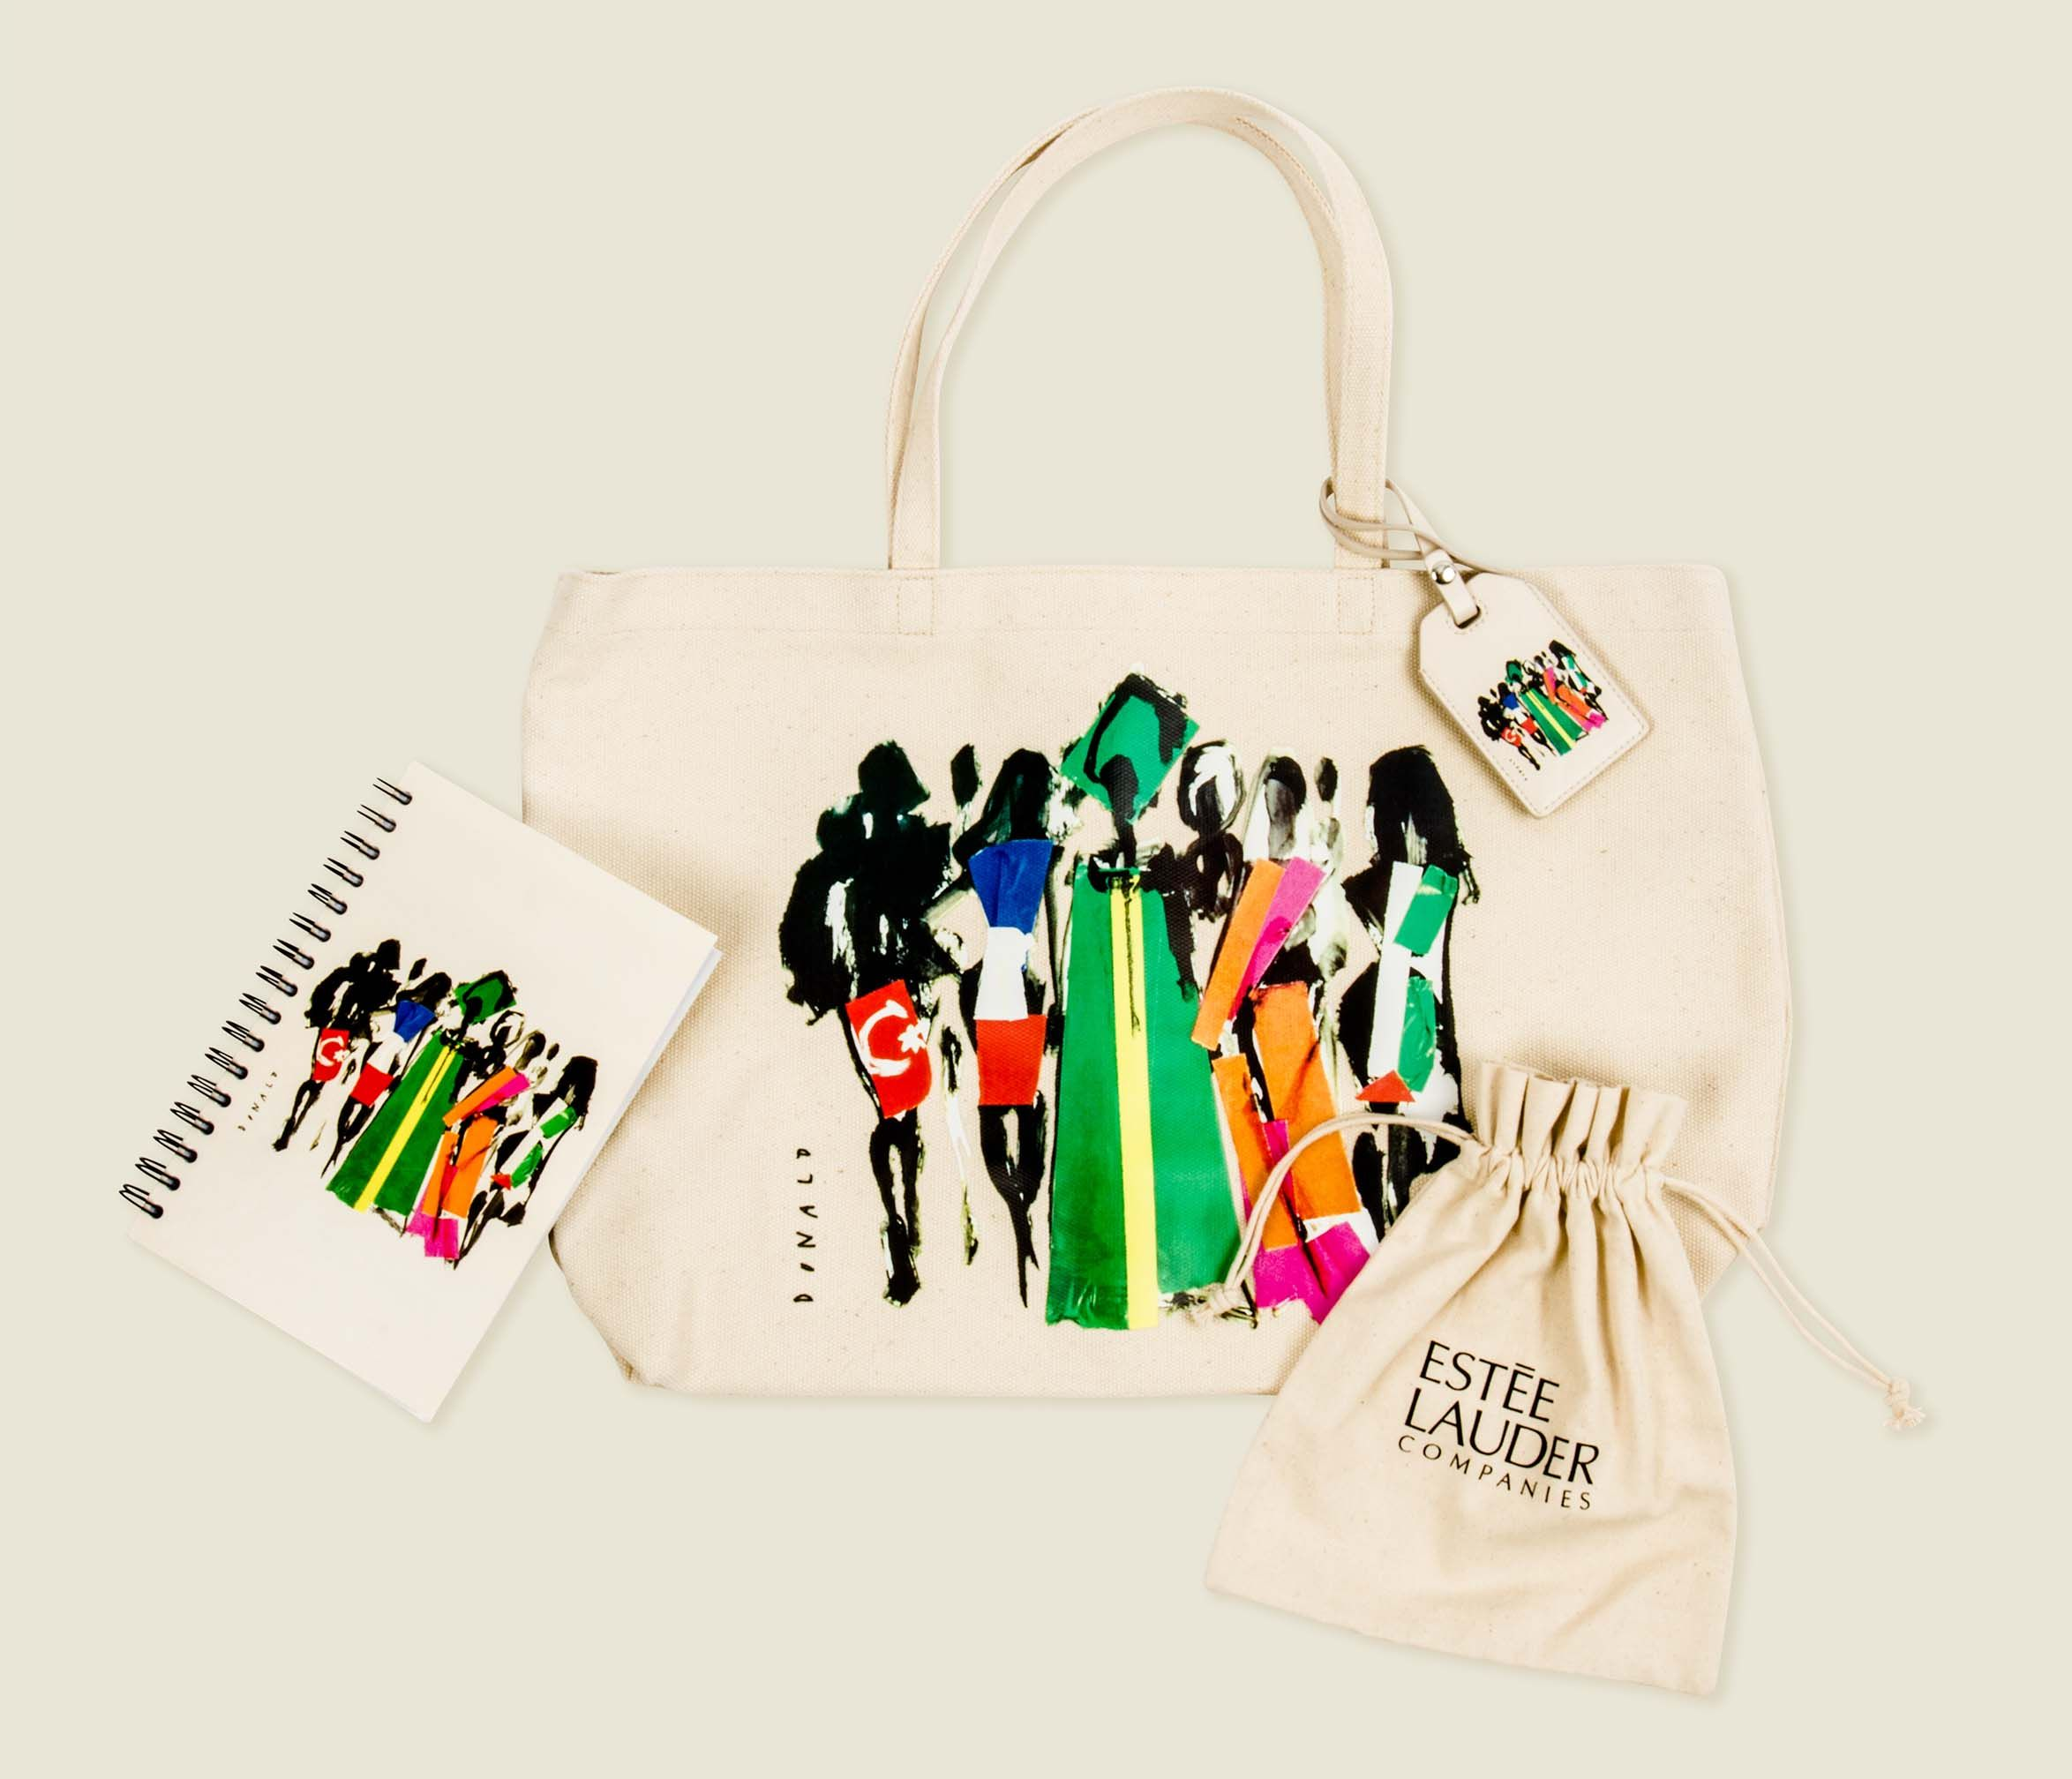 Tote bag with journal and drawstring pouch